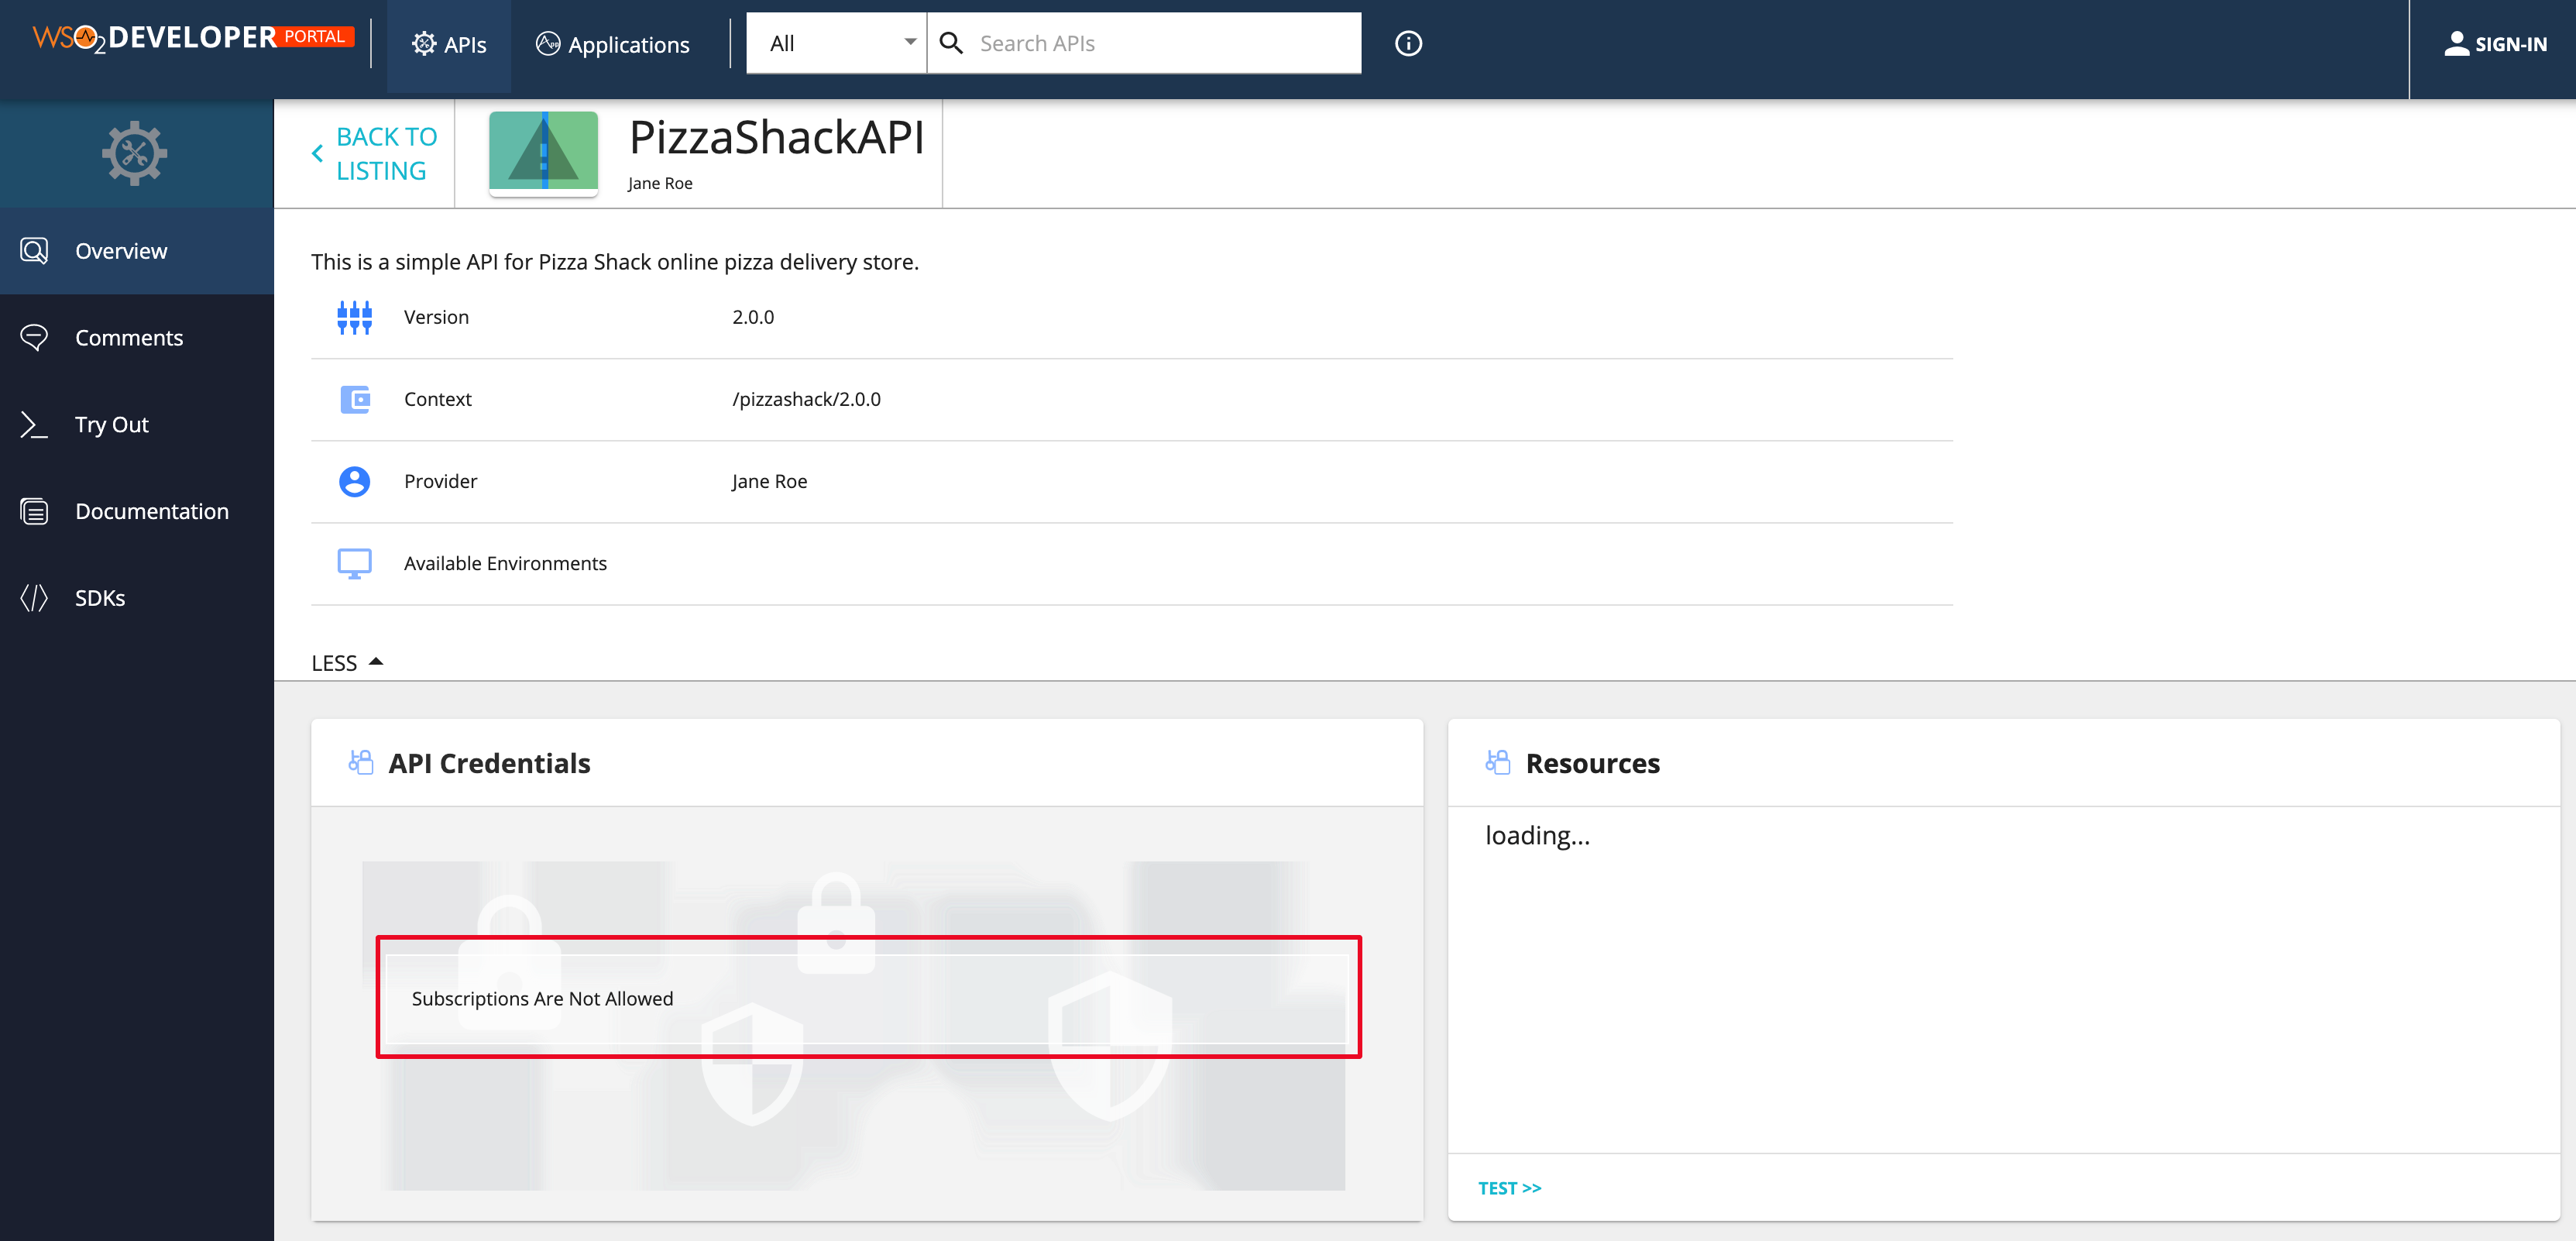 View overview of PizzaShackAPI 2.0.0